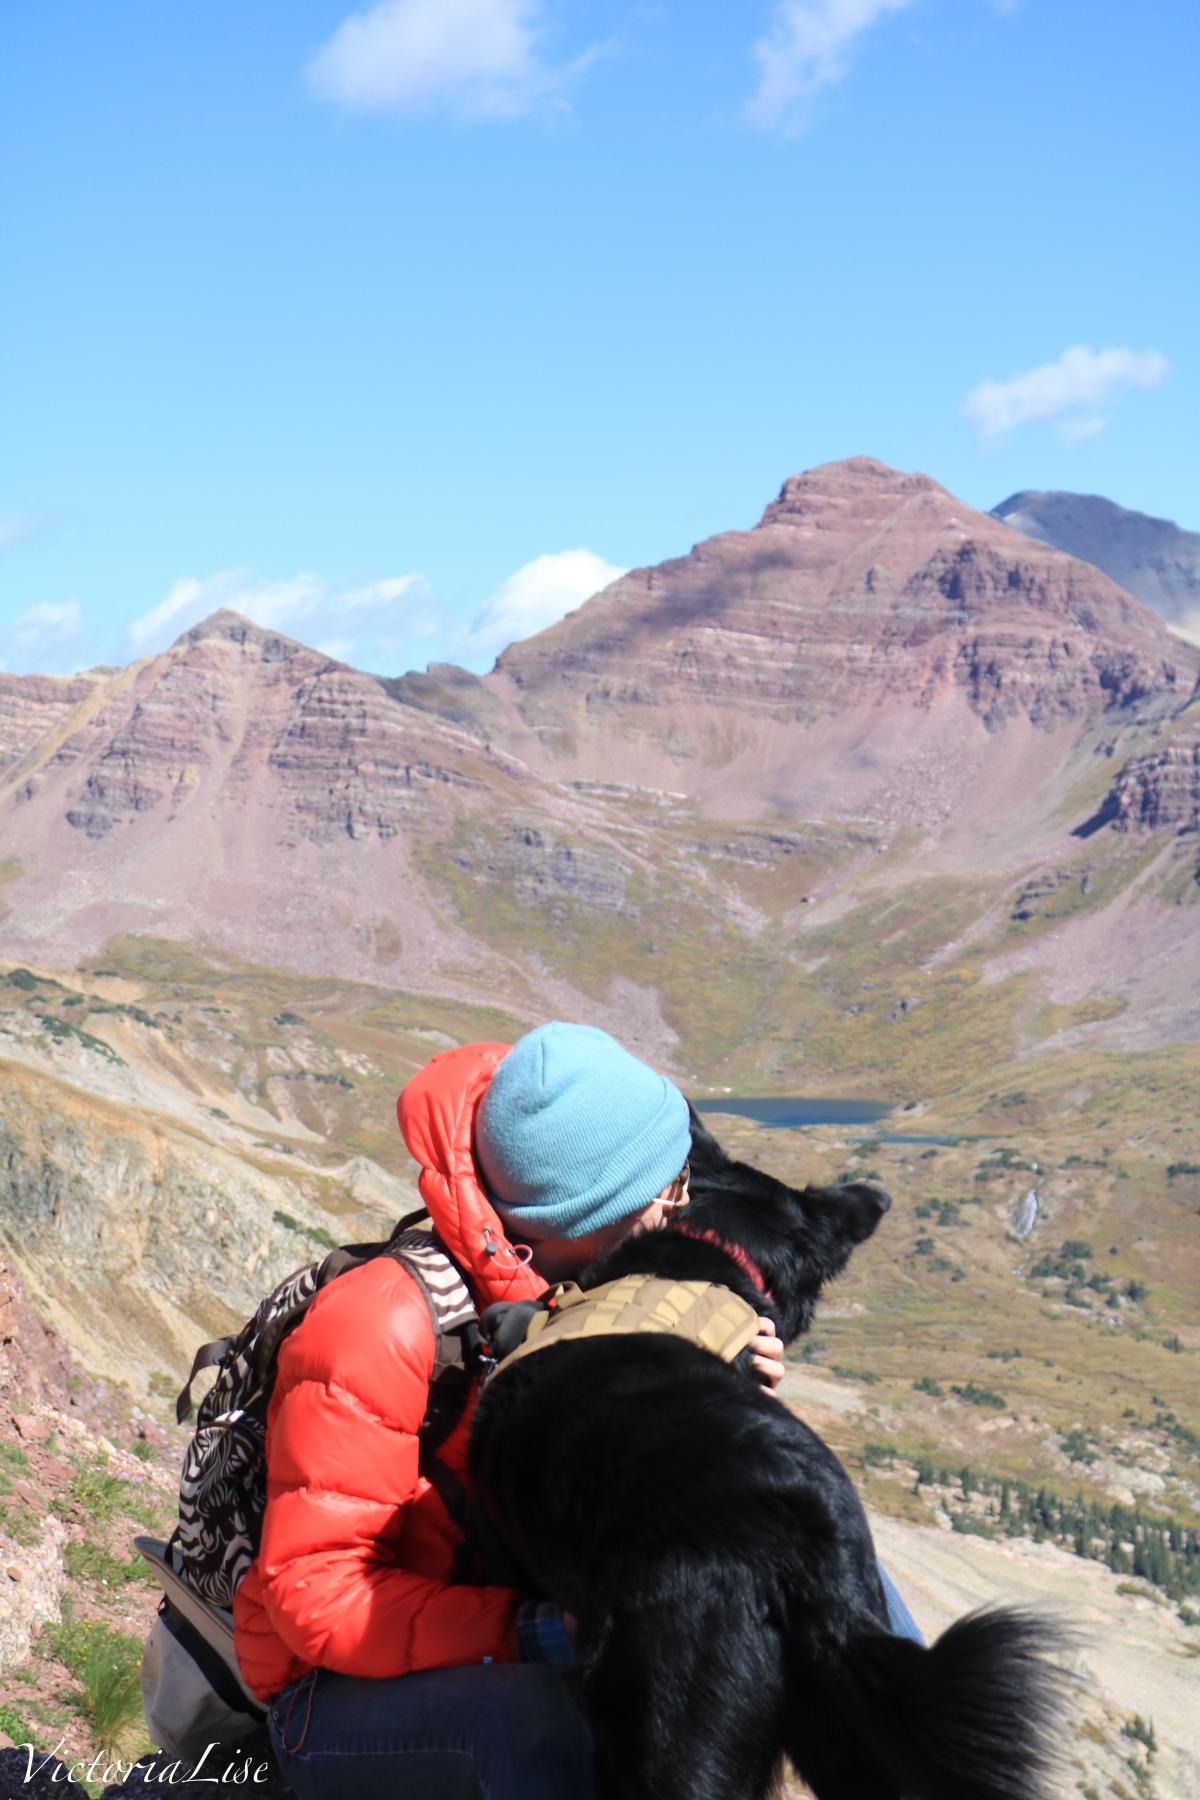 Victoria Lise and dog, Styx near summit of Teocalli mountain Colorado